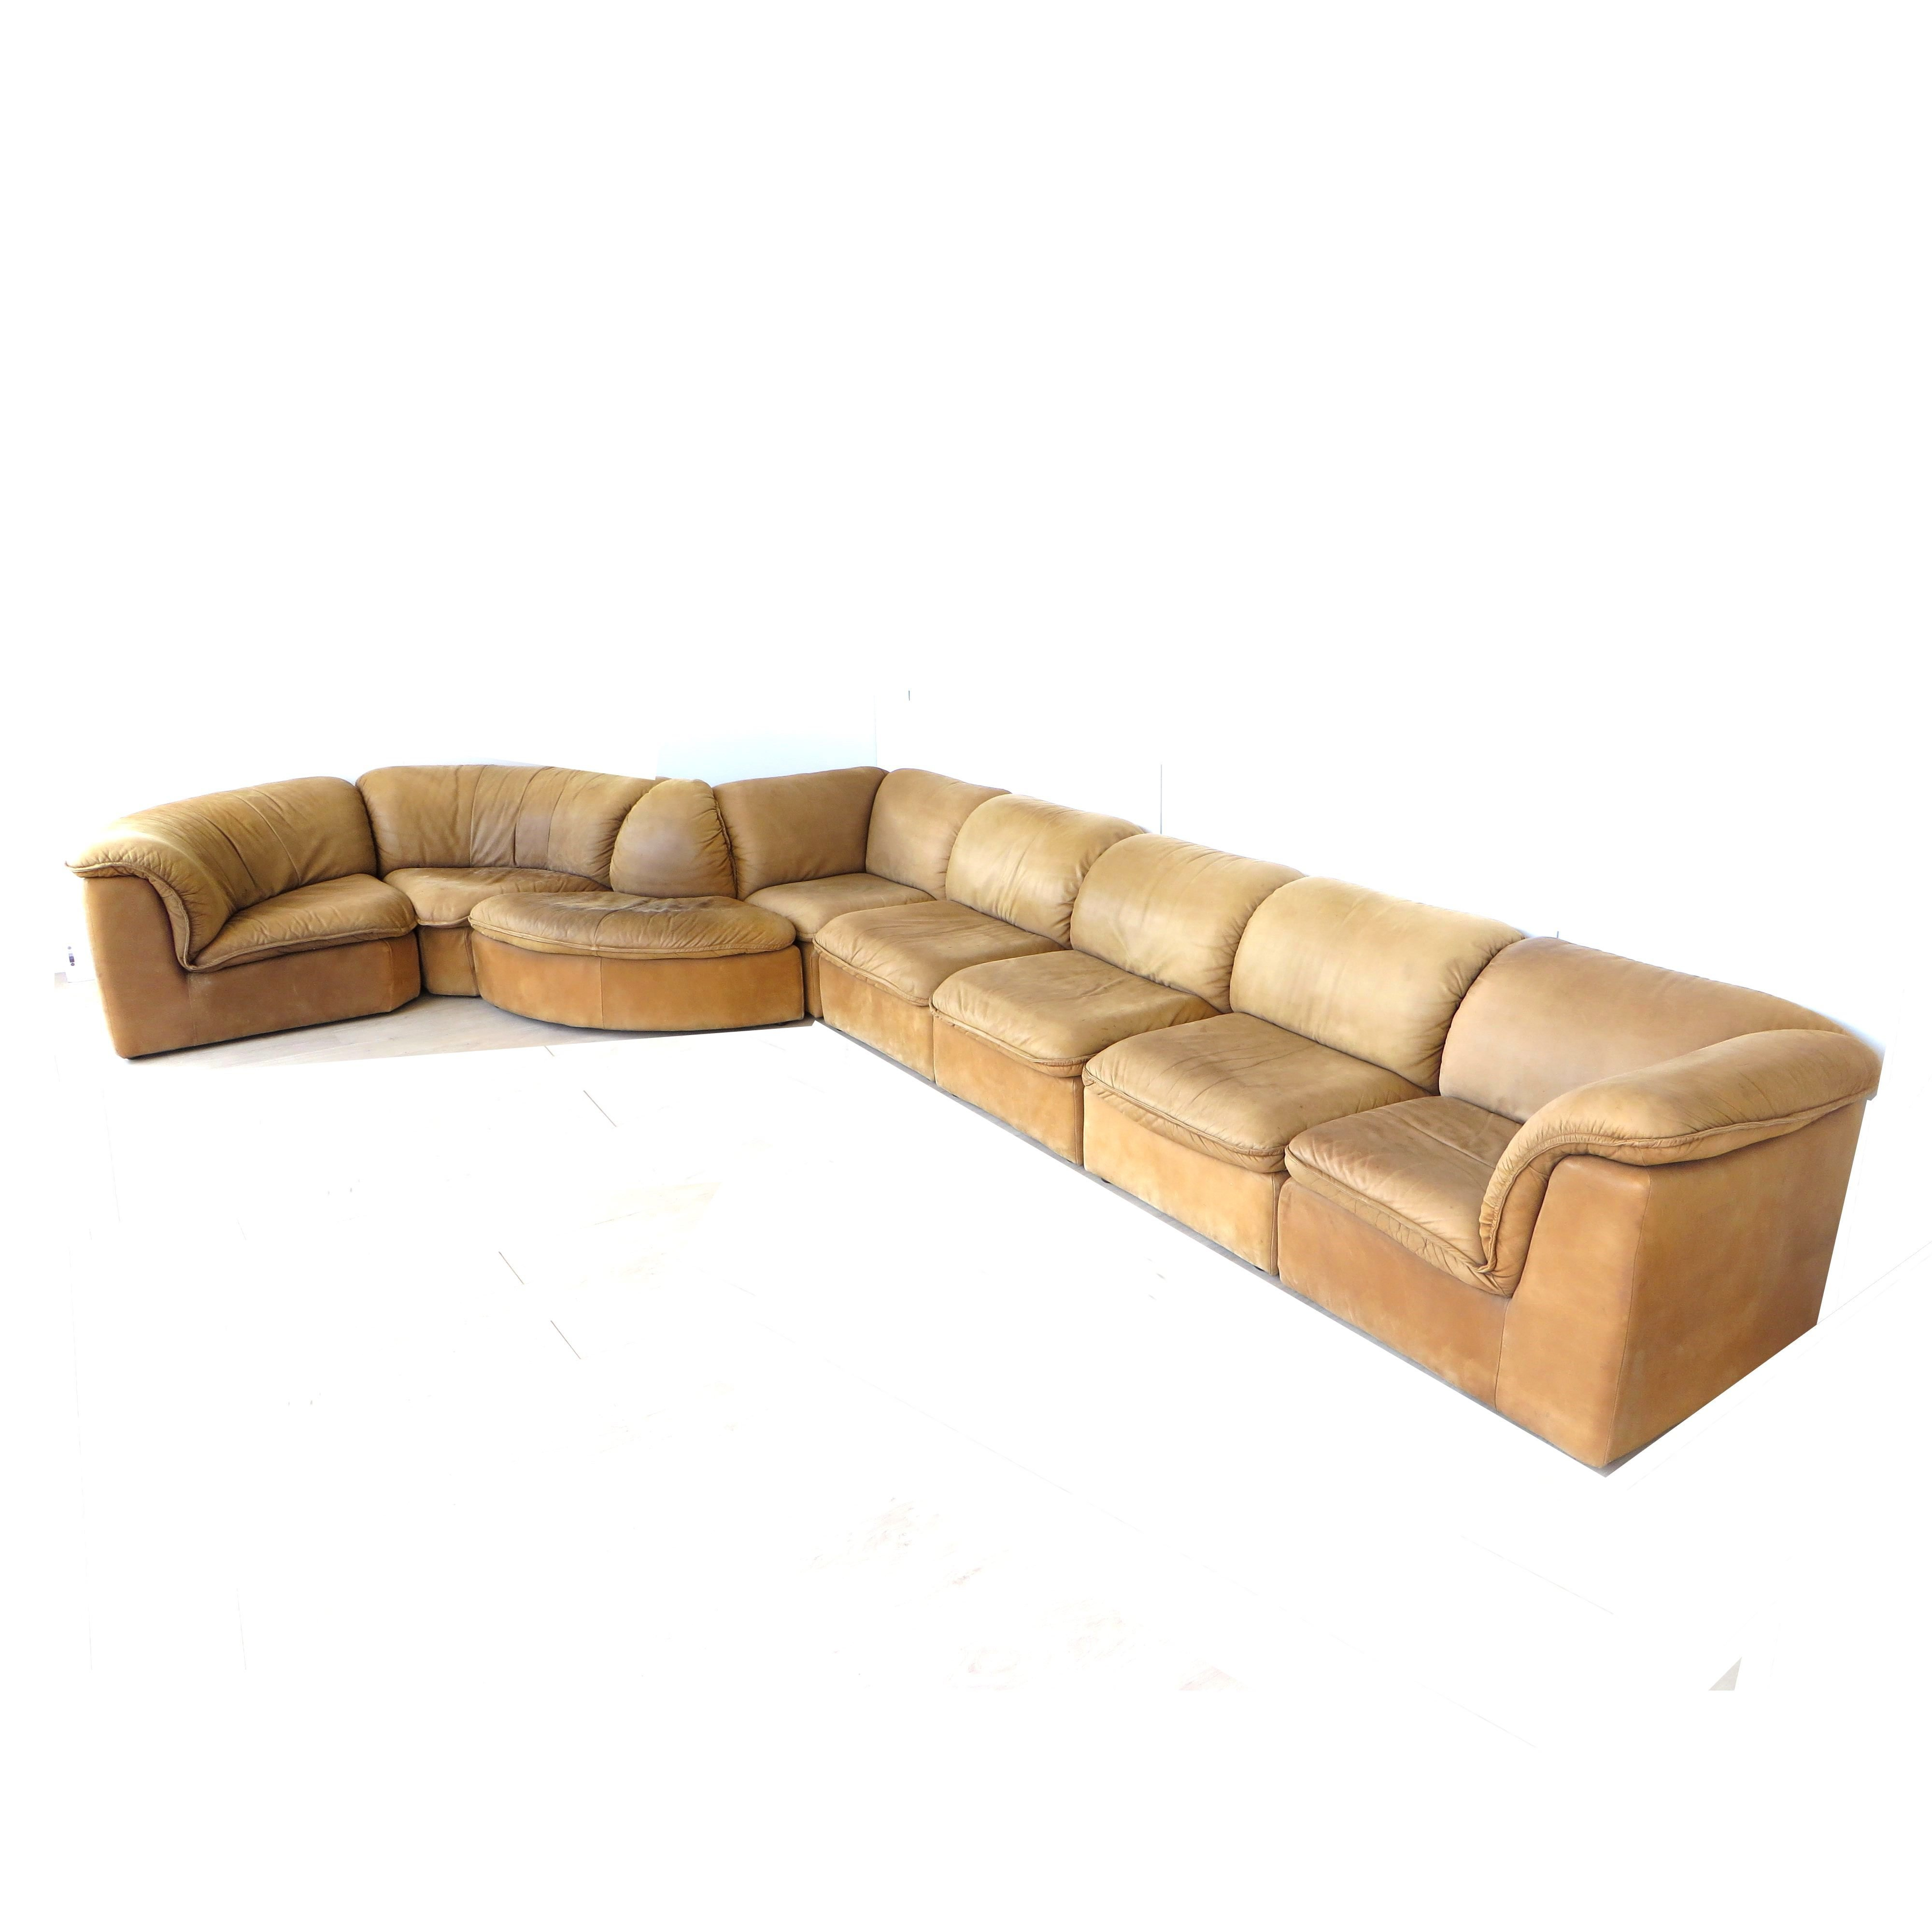 large vintage modular sofa by laauser